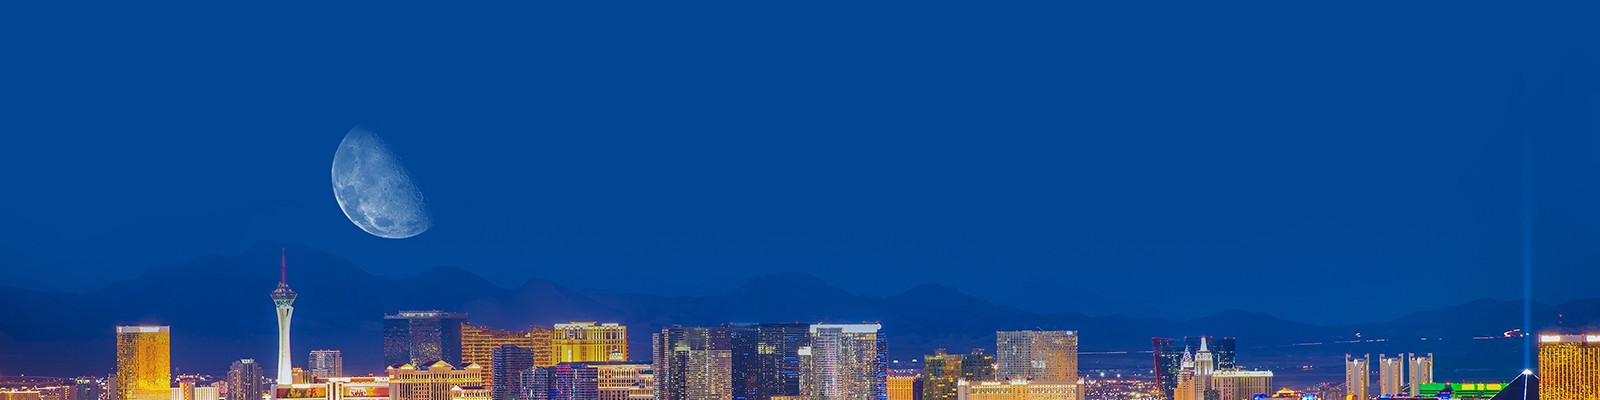 Luxury Las Vegas Holidays - Las Vegas Strip - Header